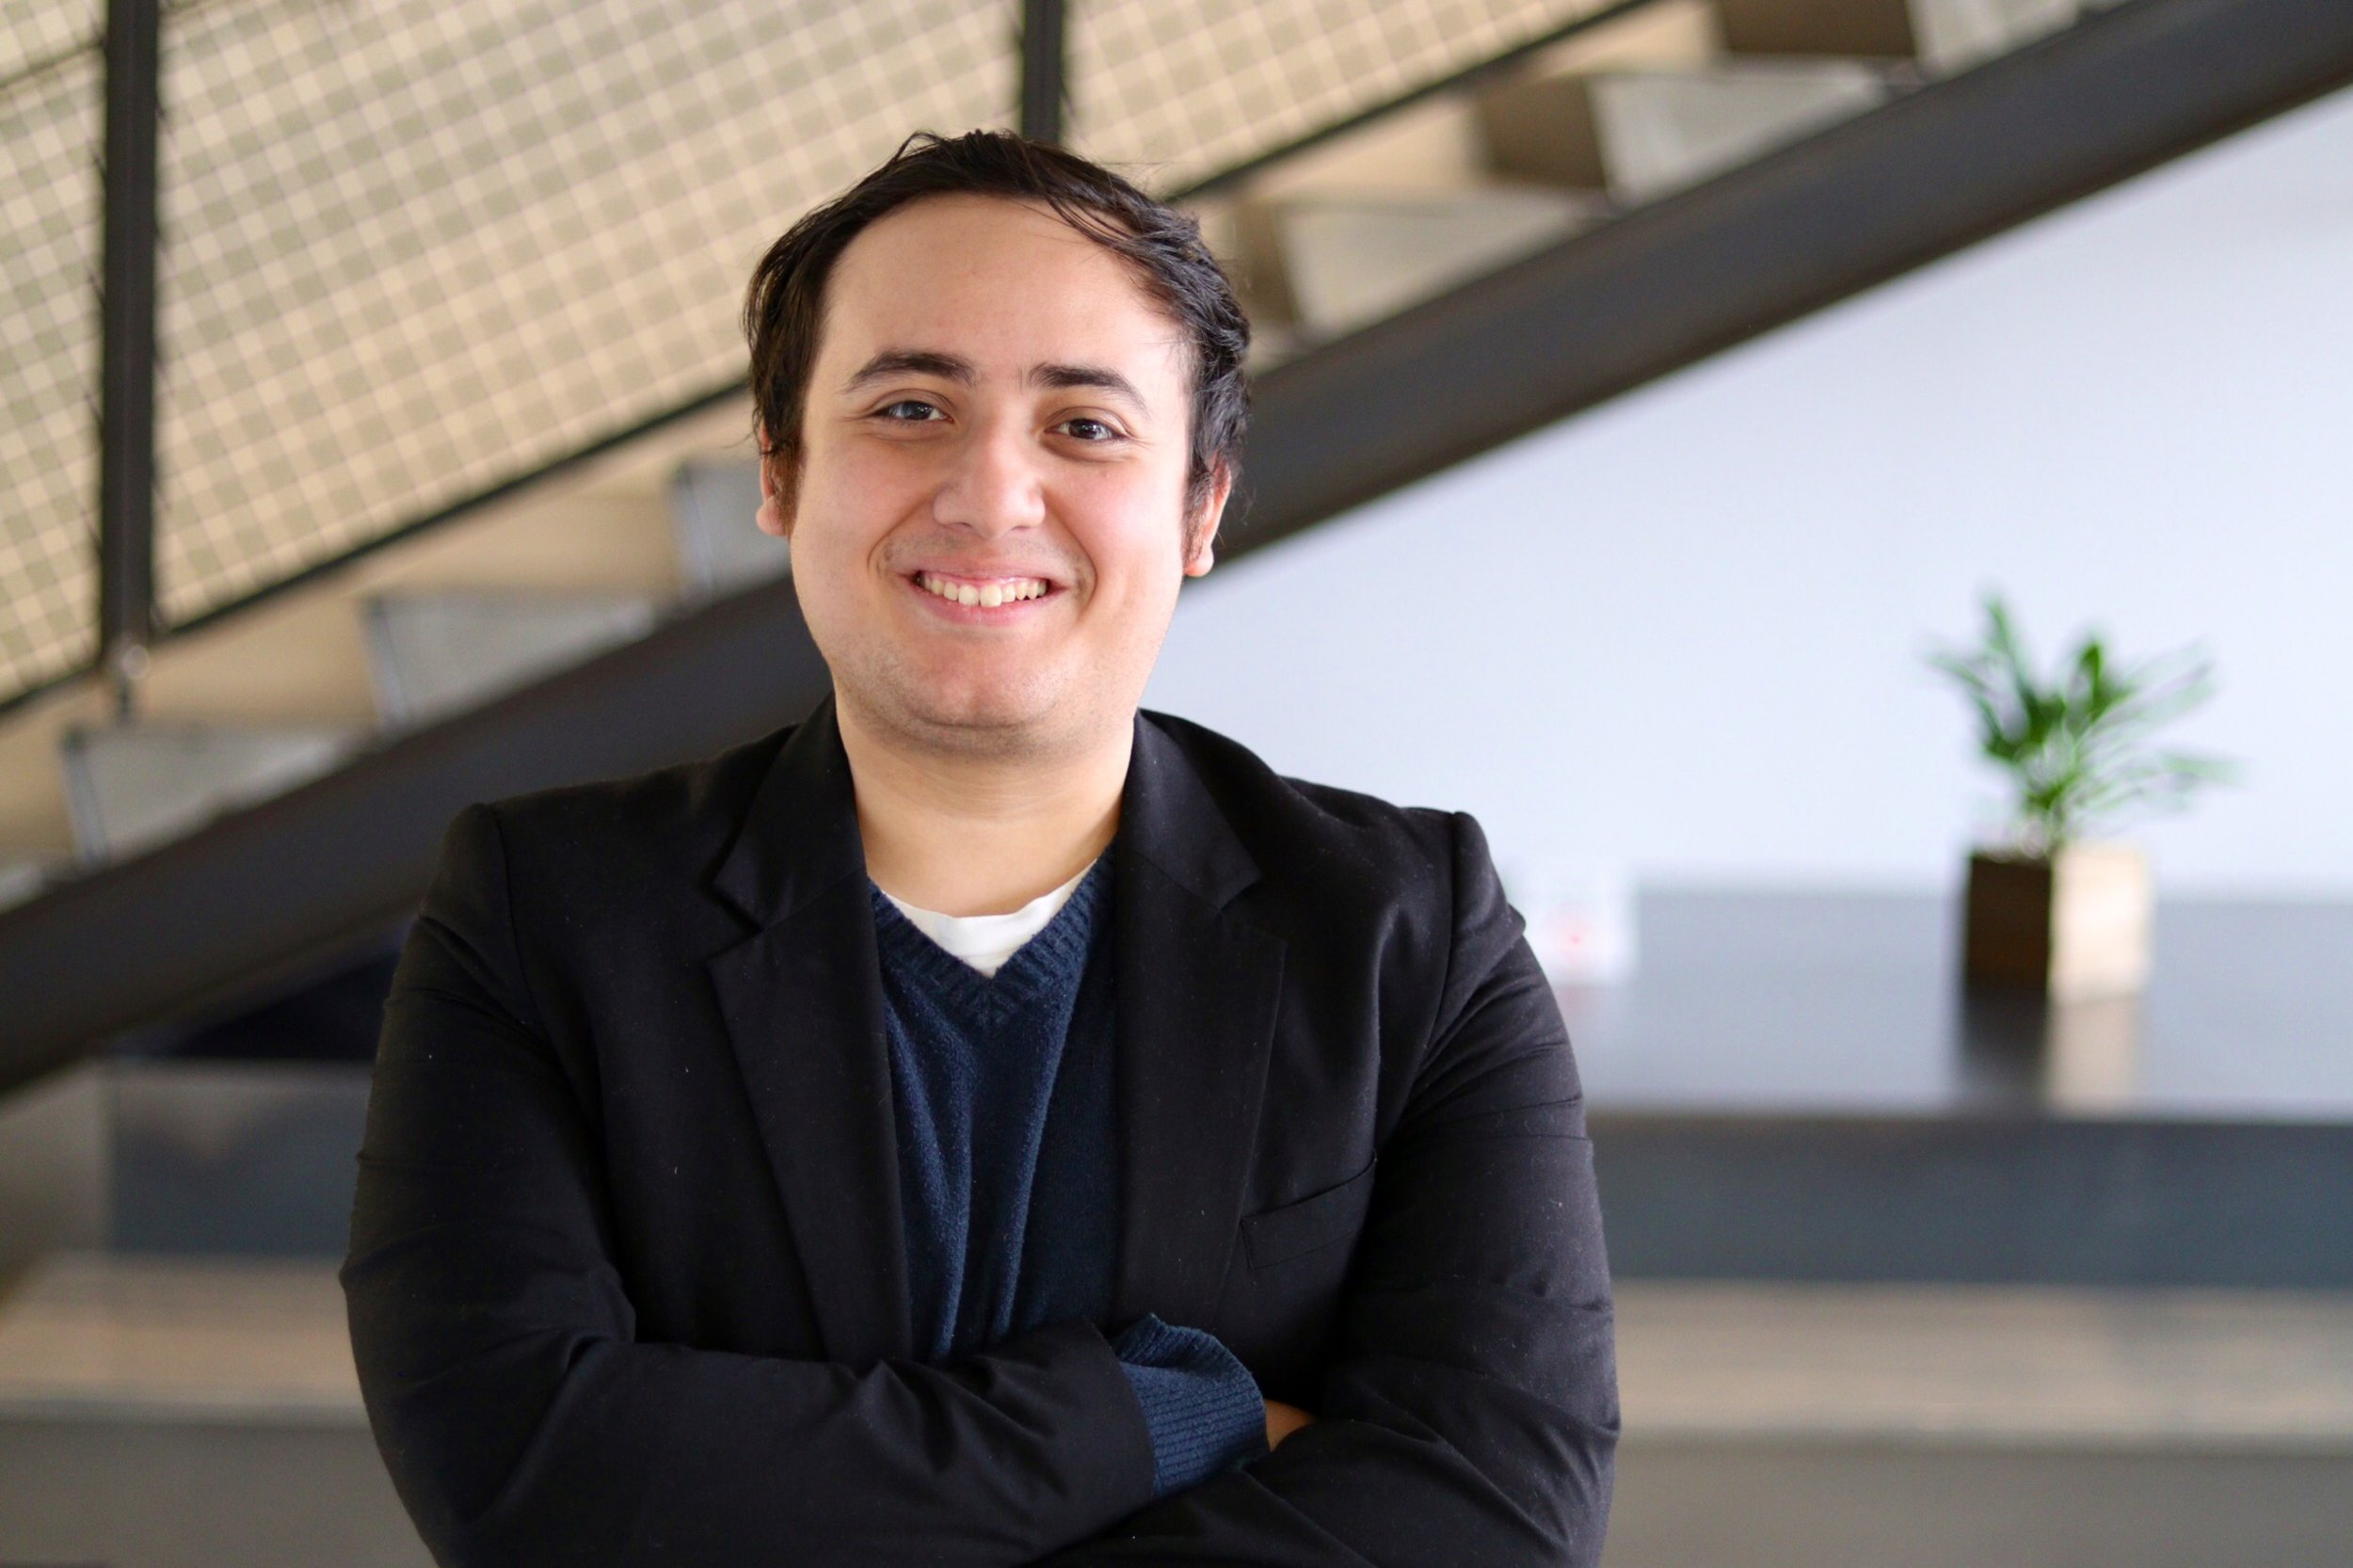 Jose Sanchez, Co-Founder of Fluxee